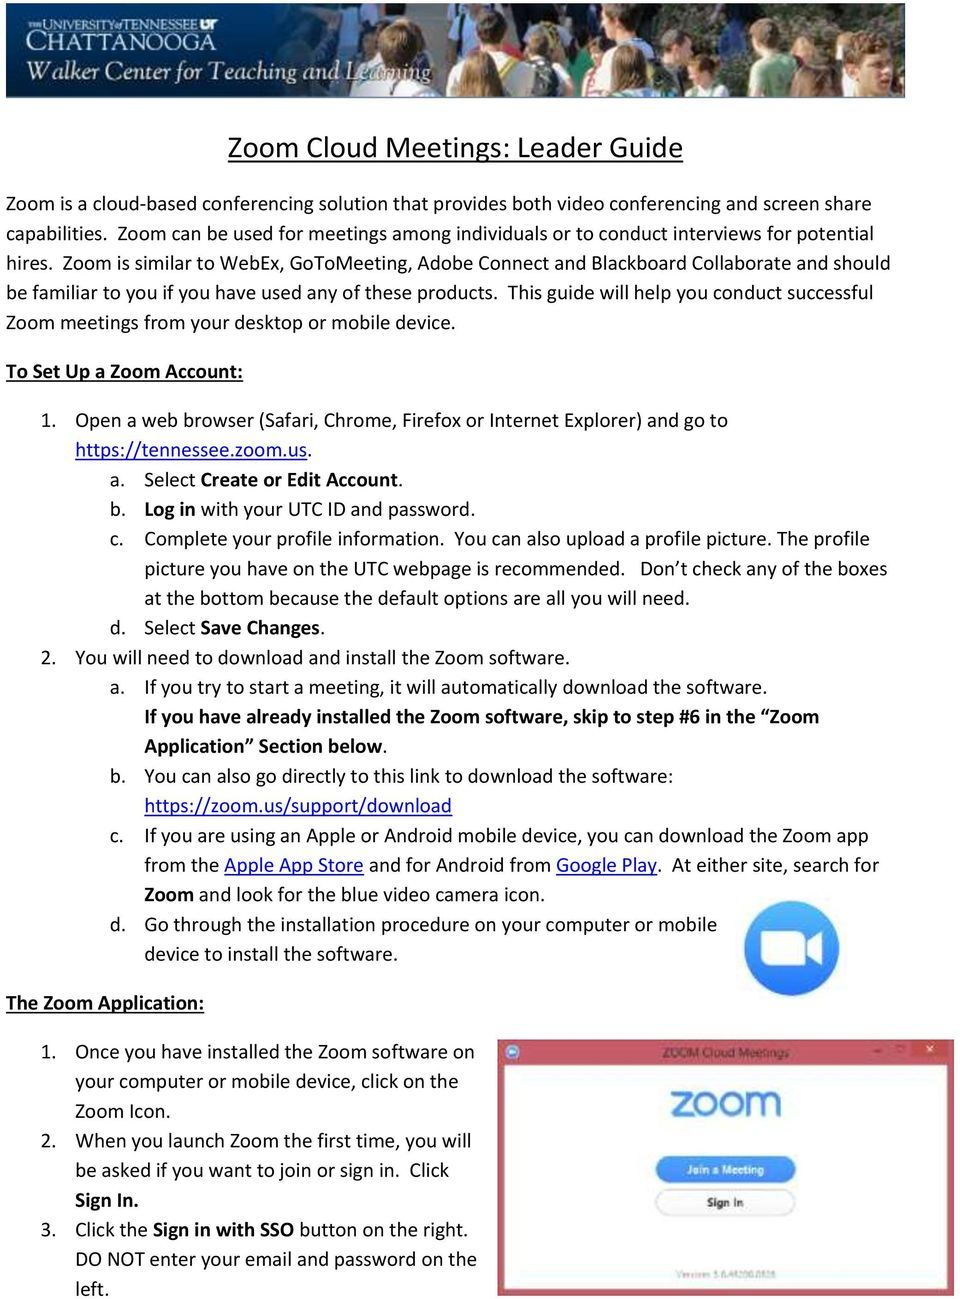 Zoom is similar to WebEx, GoToMeeting, Adobe Connect and Blackboard Collaborate and should be familiar to you if you have used any of these products.